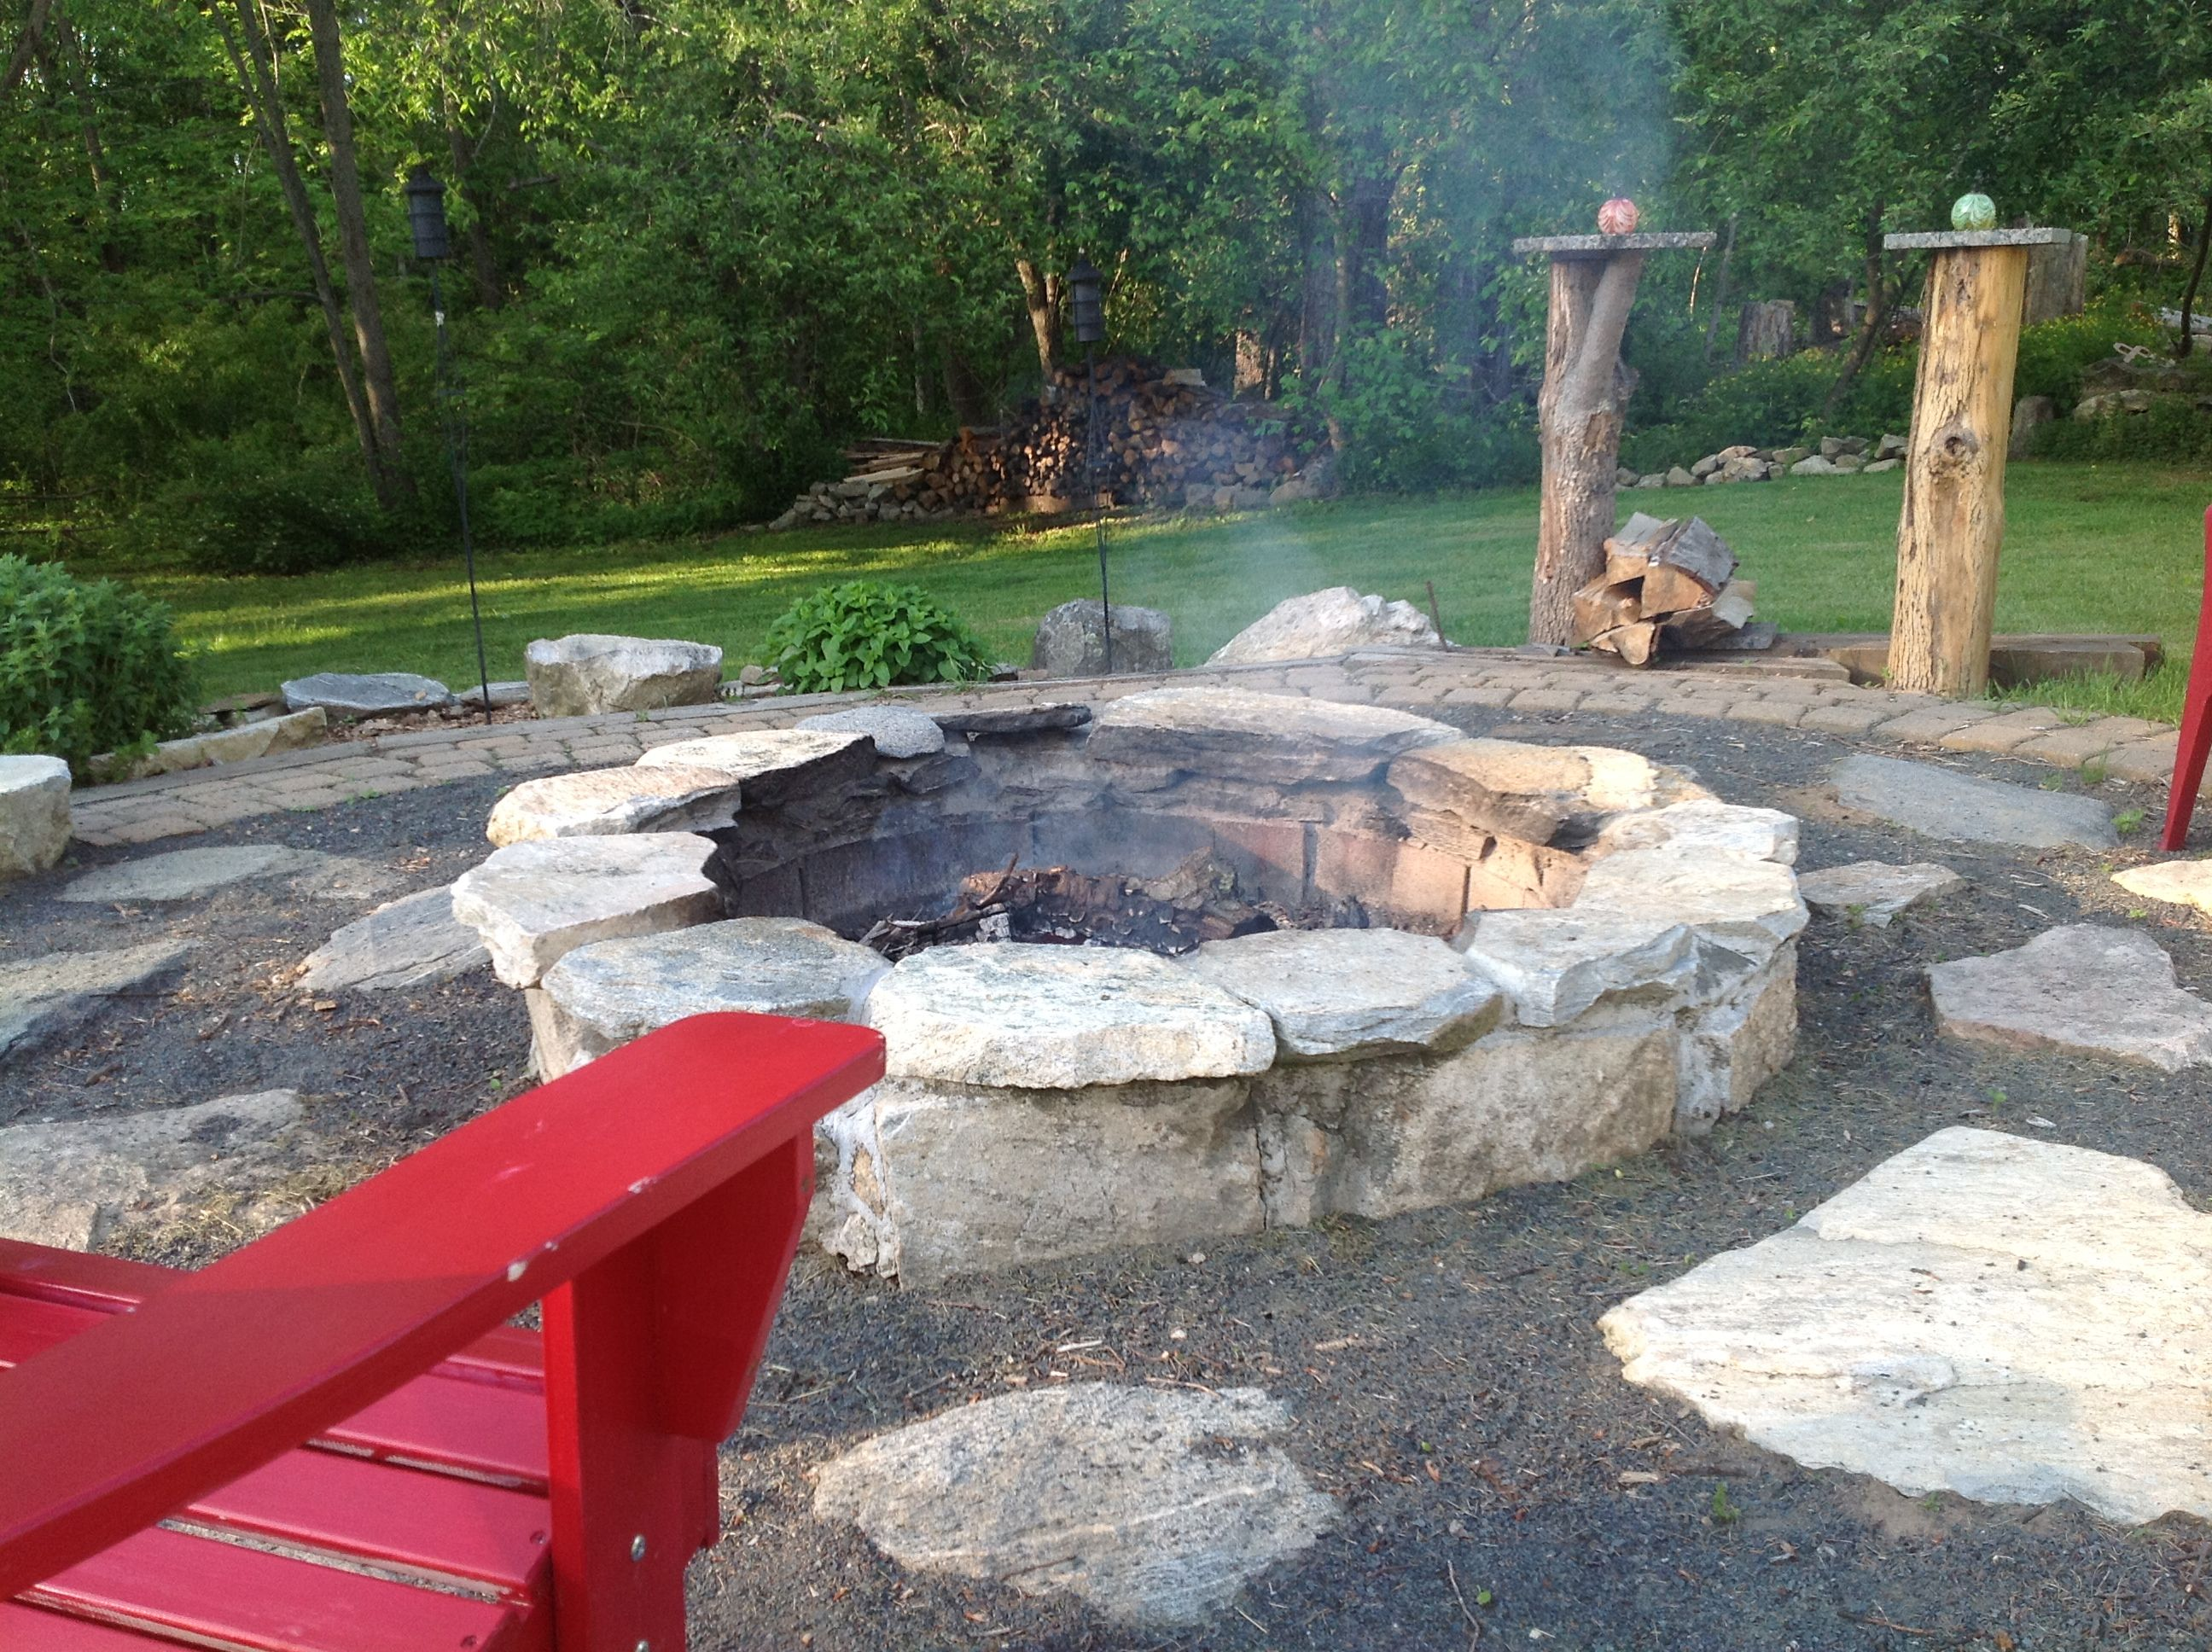 diy fire pit used flat rocks and square brick we already had in